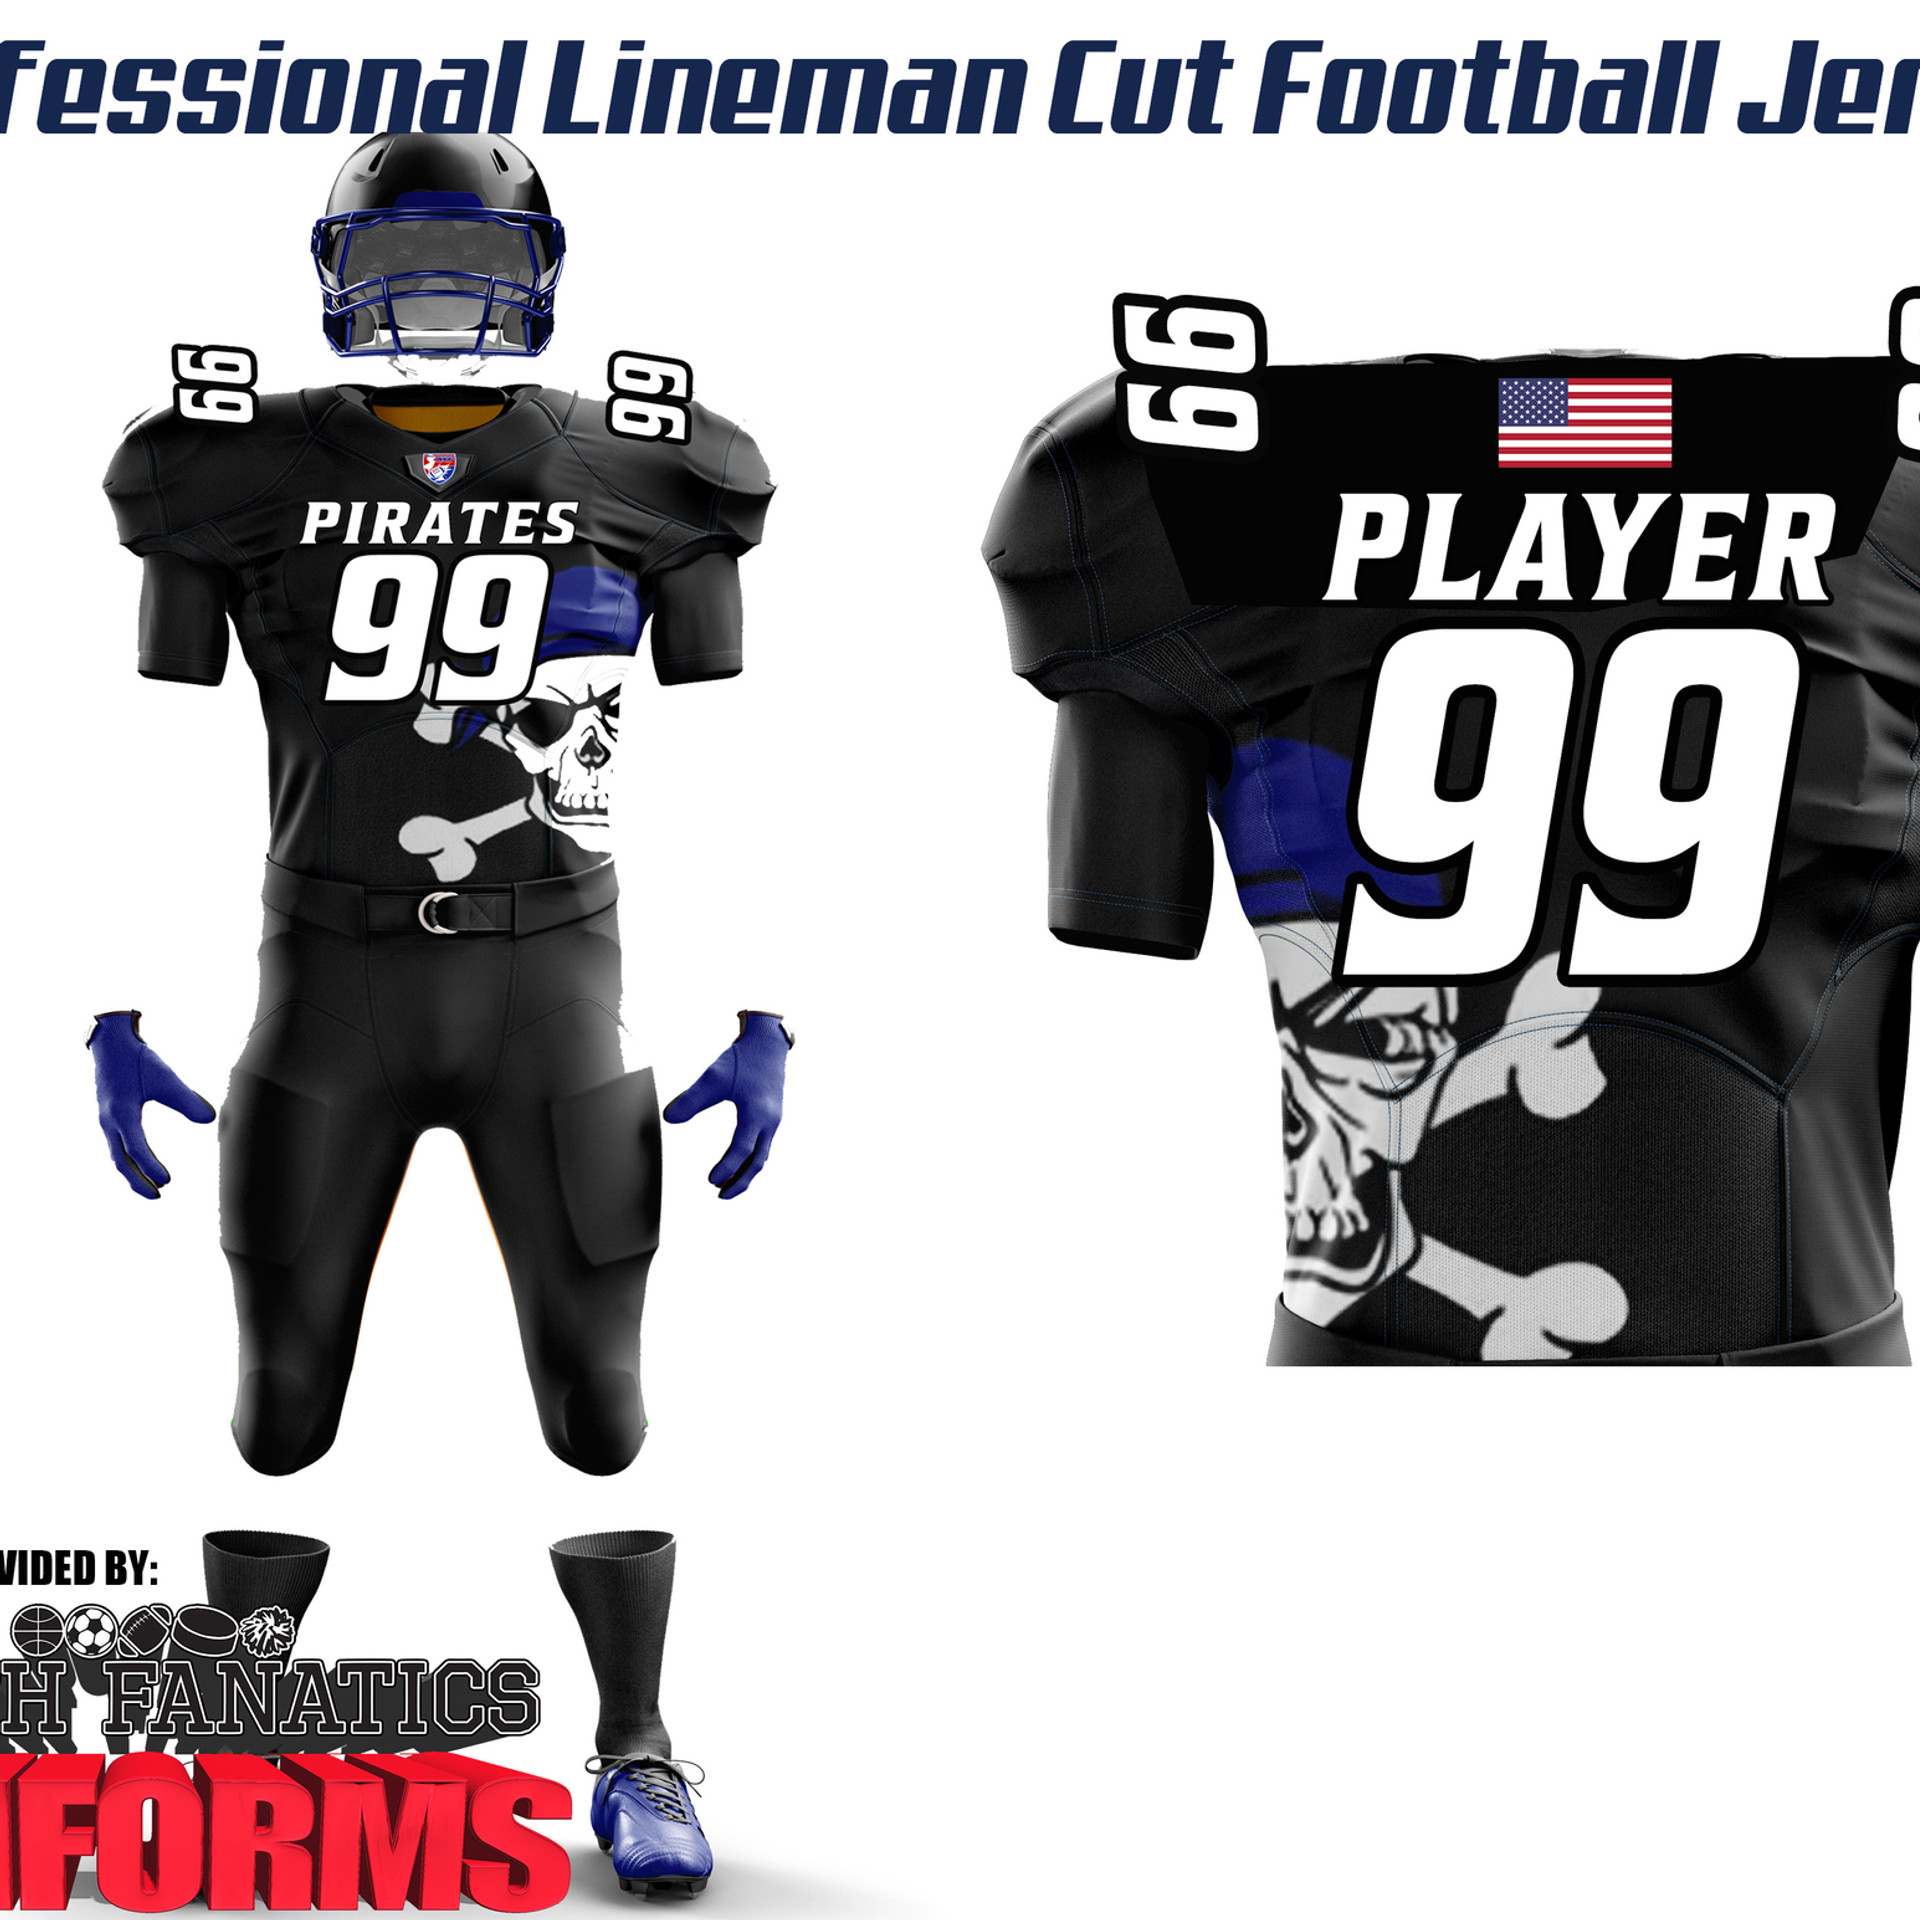 Professional Lineman Cut Football Jersey